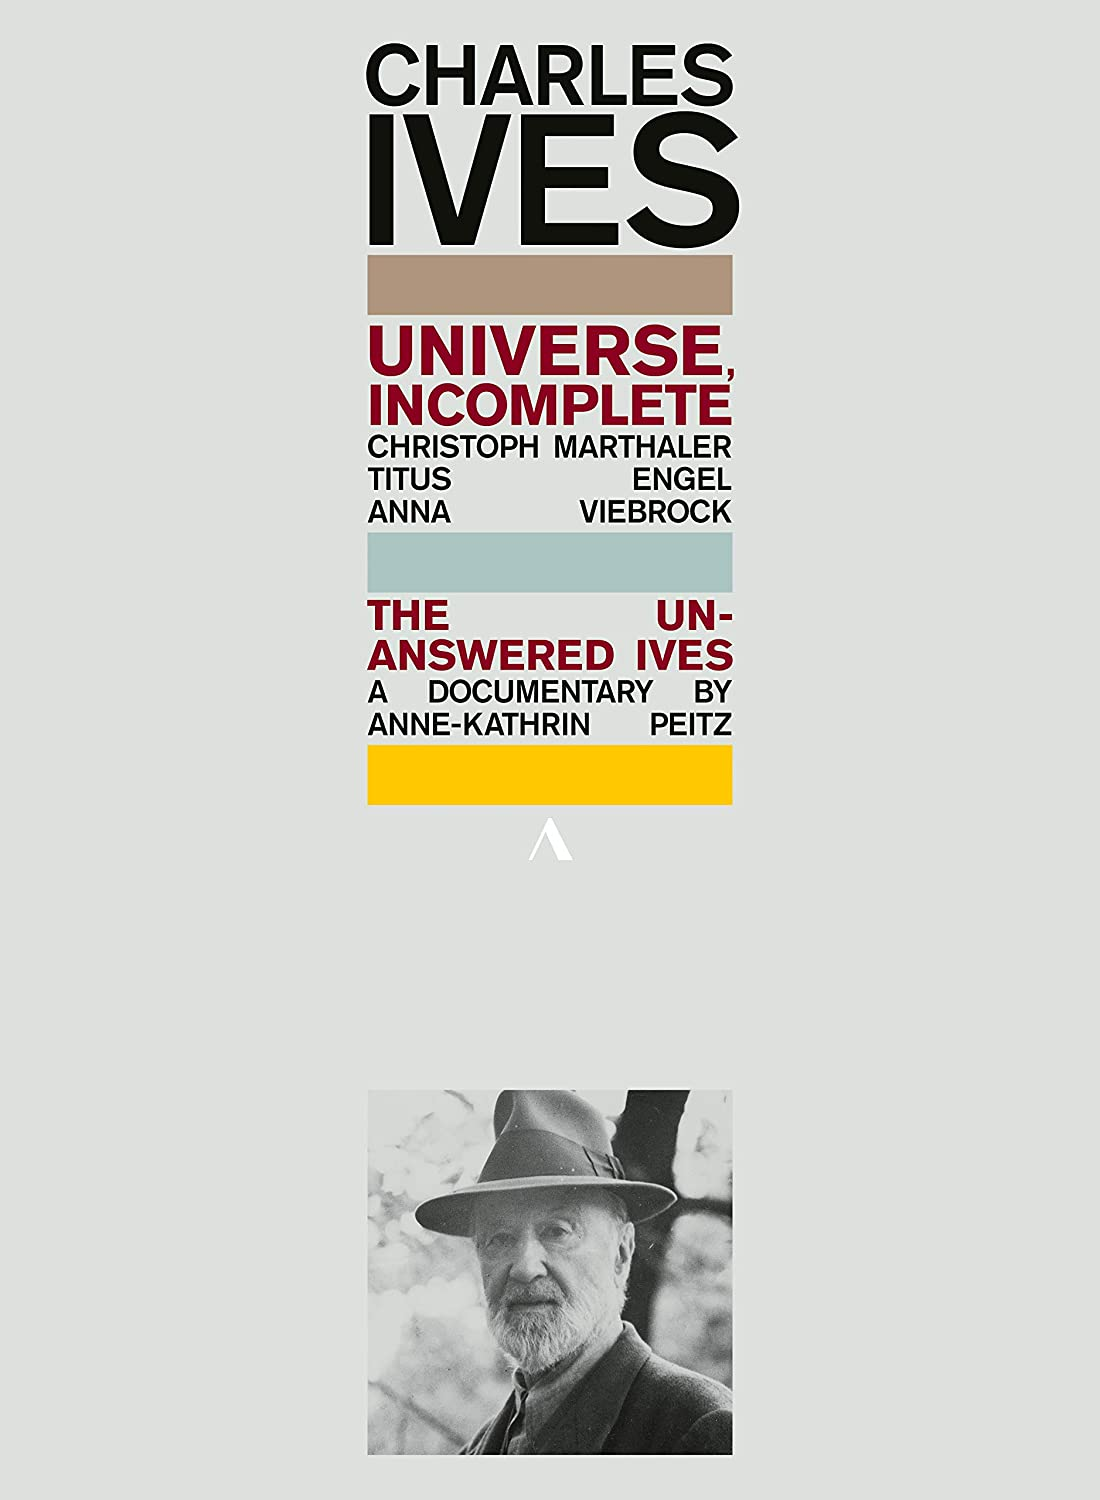 Ives universe